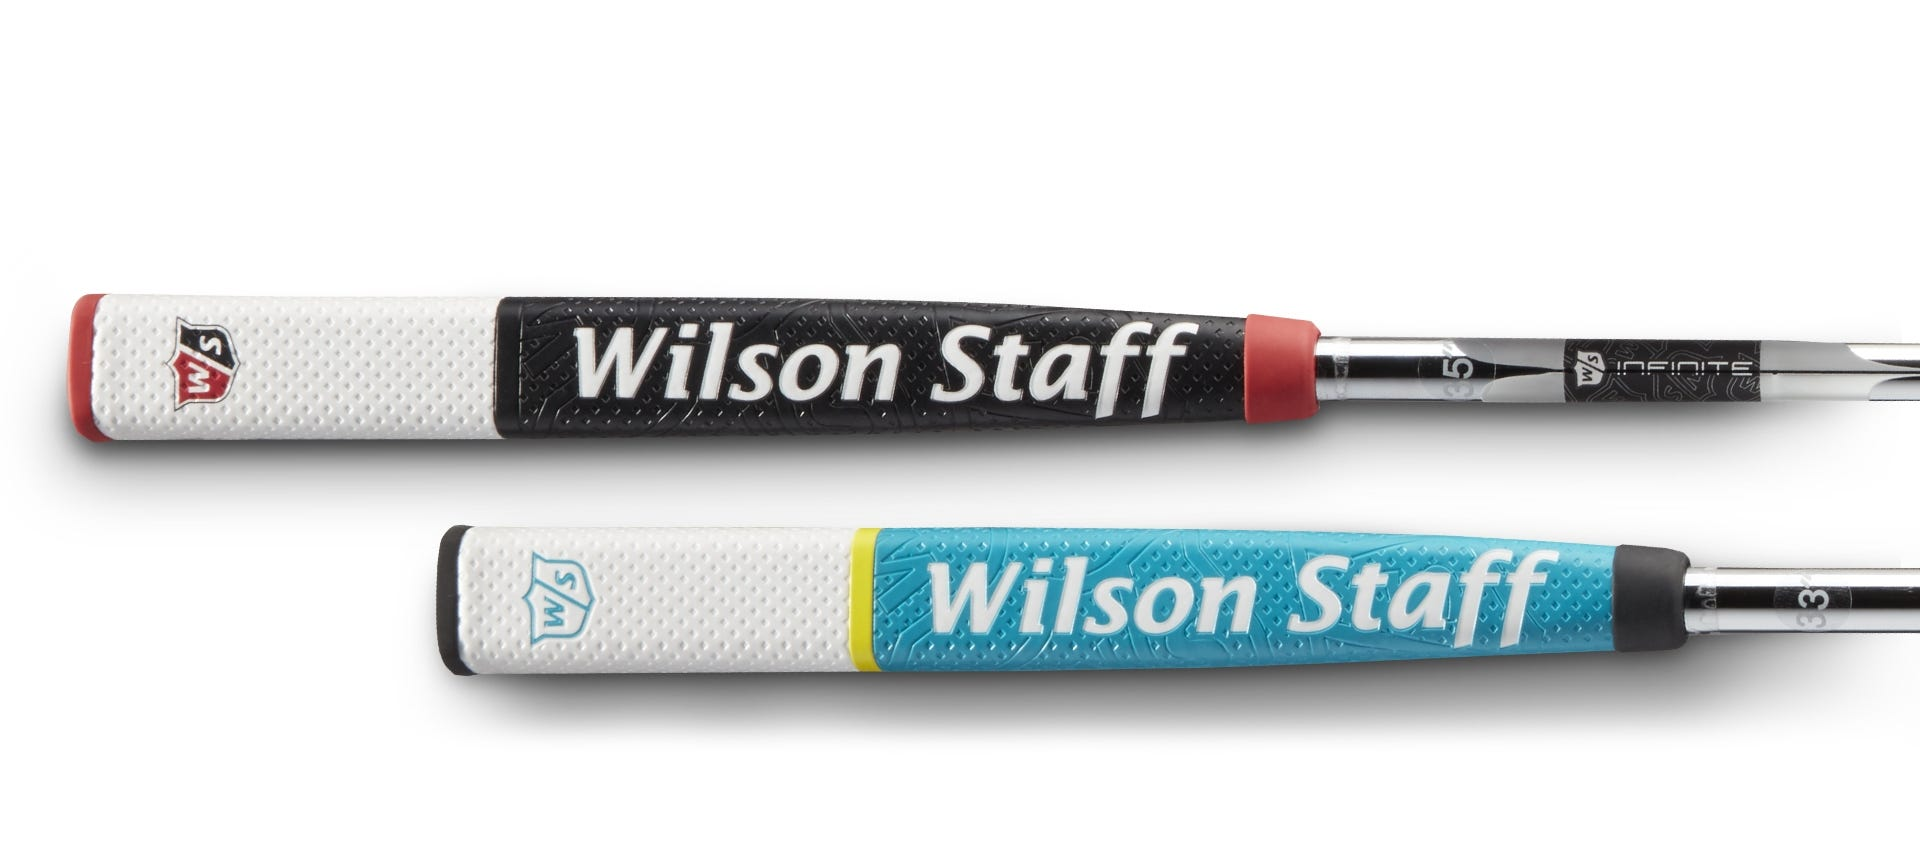 Grips Wilson Staff Infinite pour putter